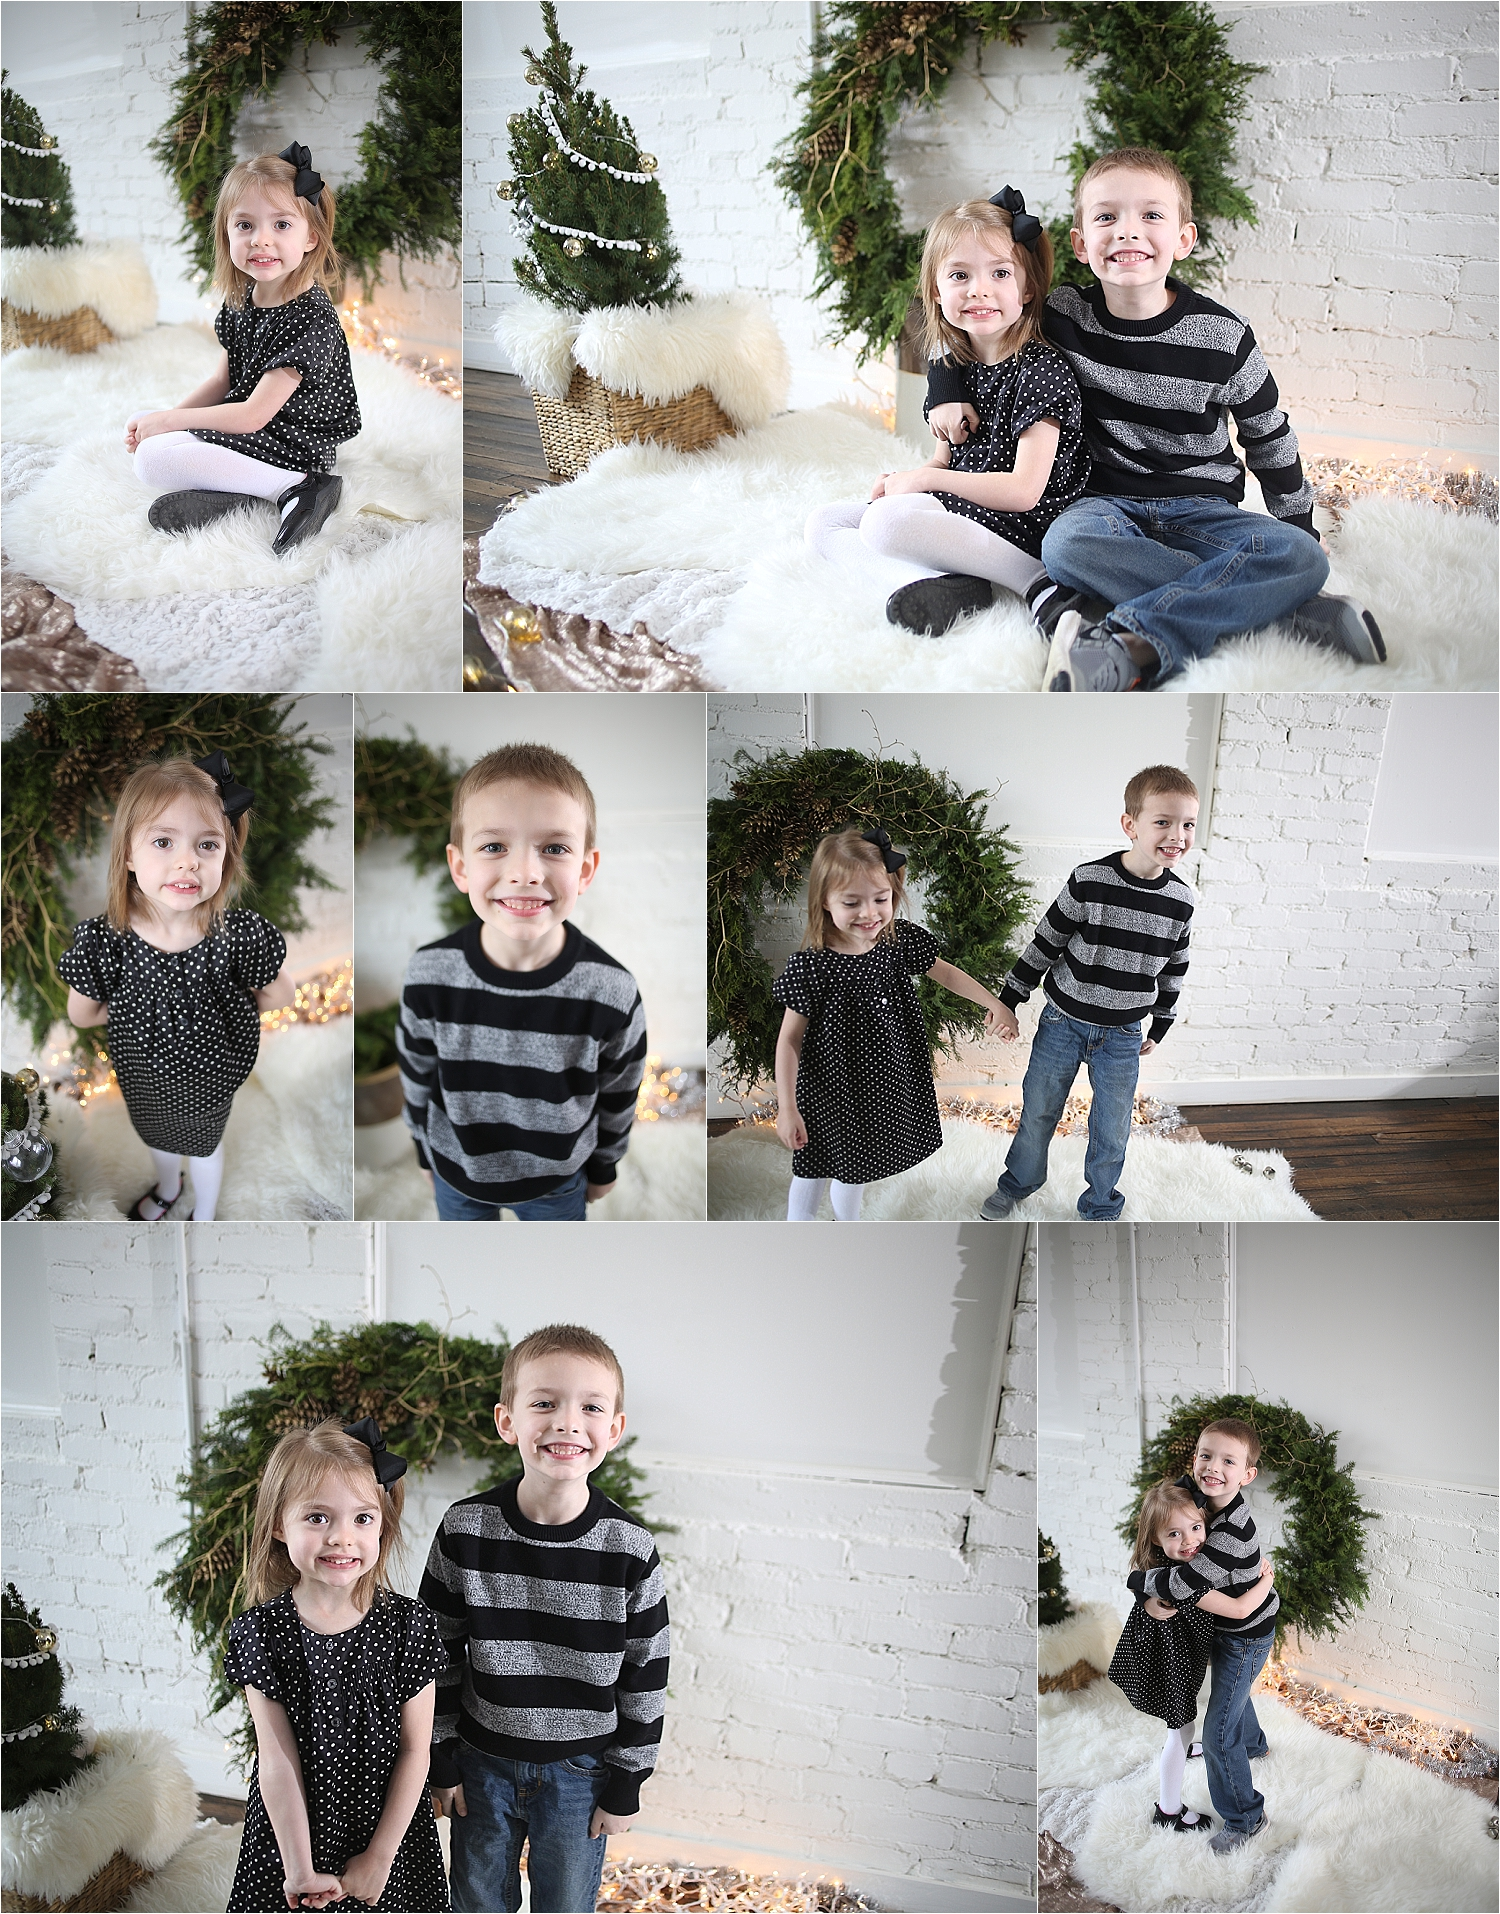 Blacksburg-Family-Photographer-Christmas-Photos_0003.jpg